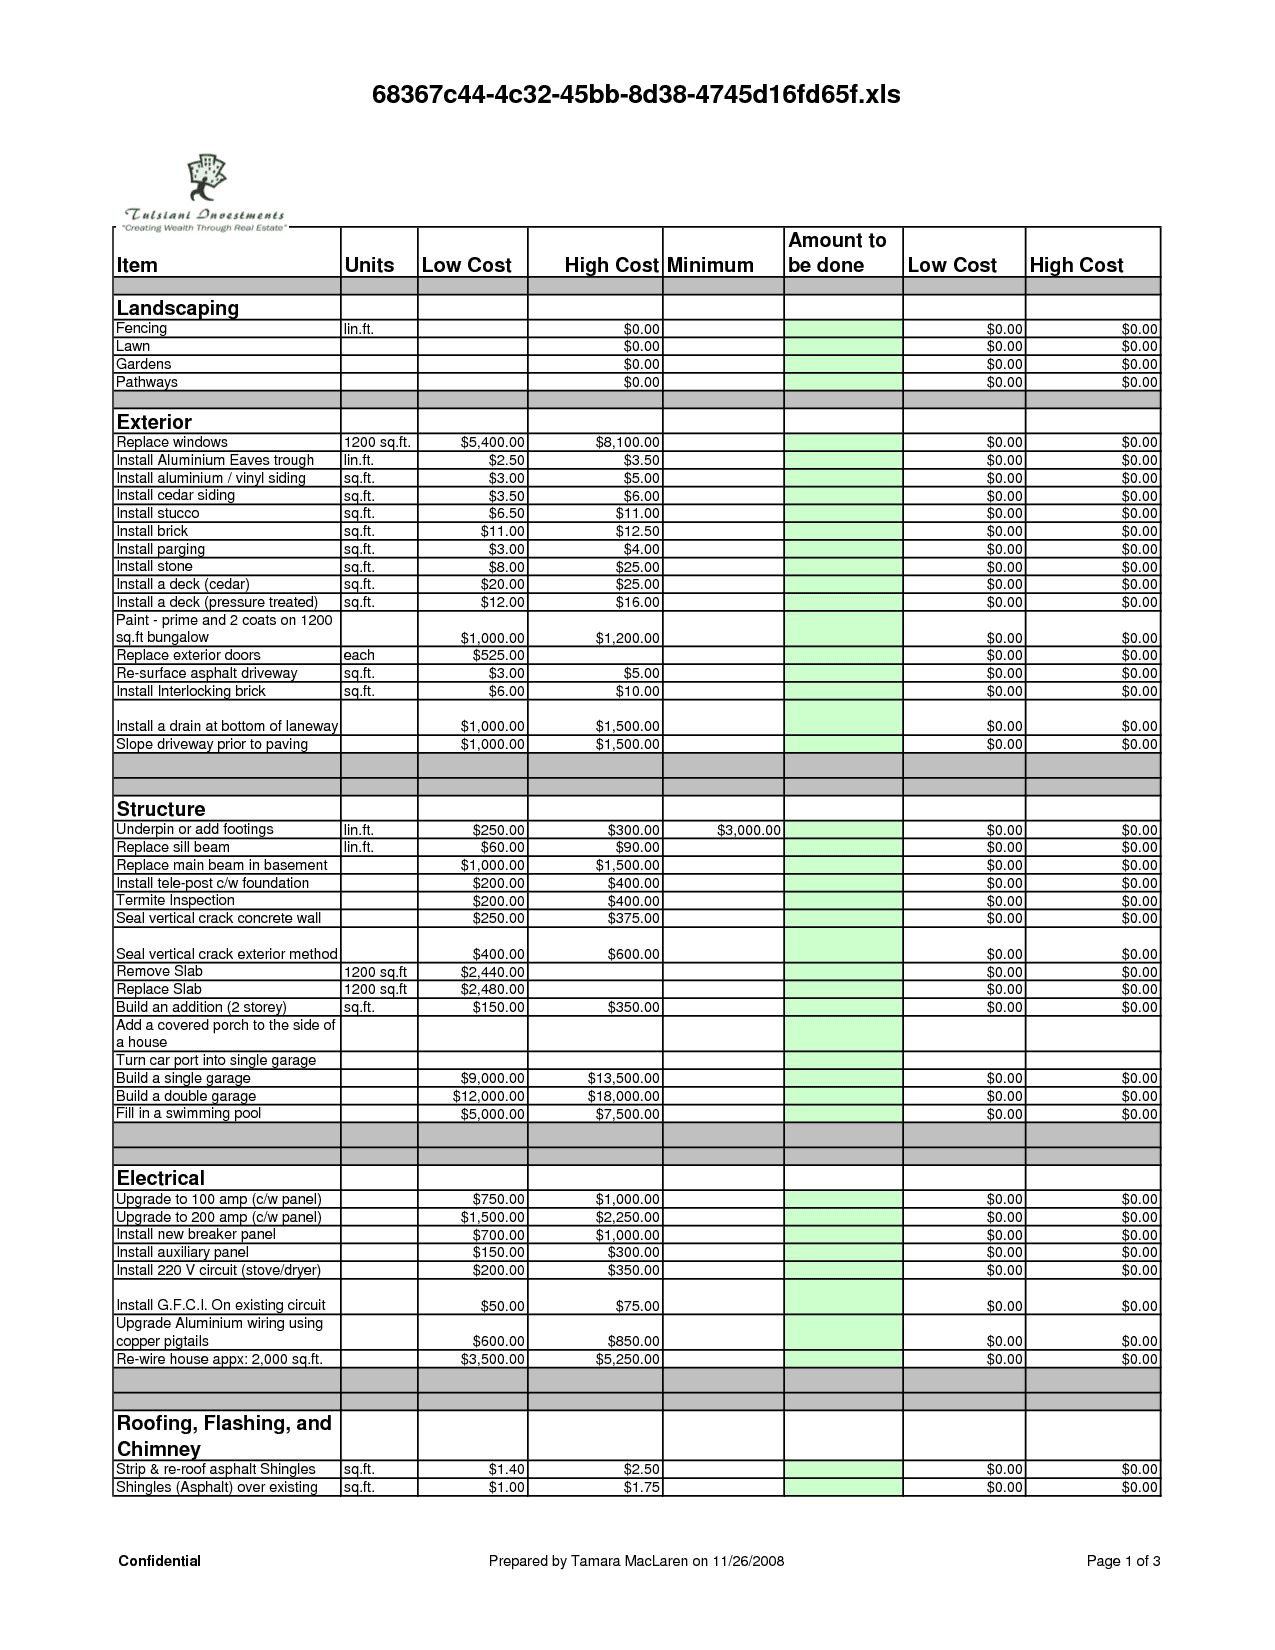 Excel Templates For Construction Estimating Estimating Spreadsheet Template Spreadsheet Templates for Busines Spreadsheet Templates for Busines Residential Construction Estimating Spreadsheets